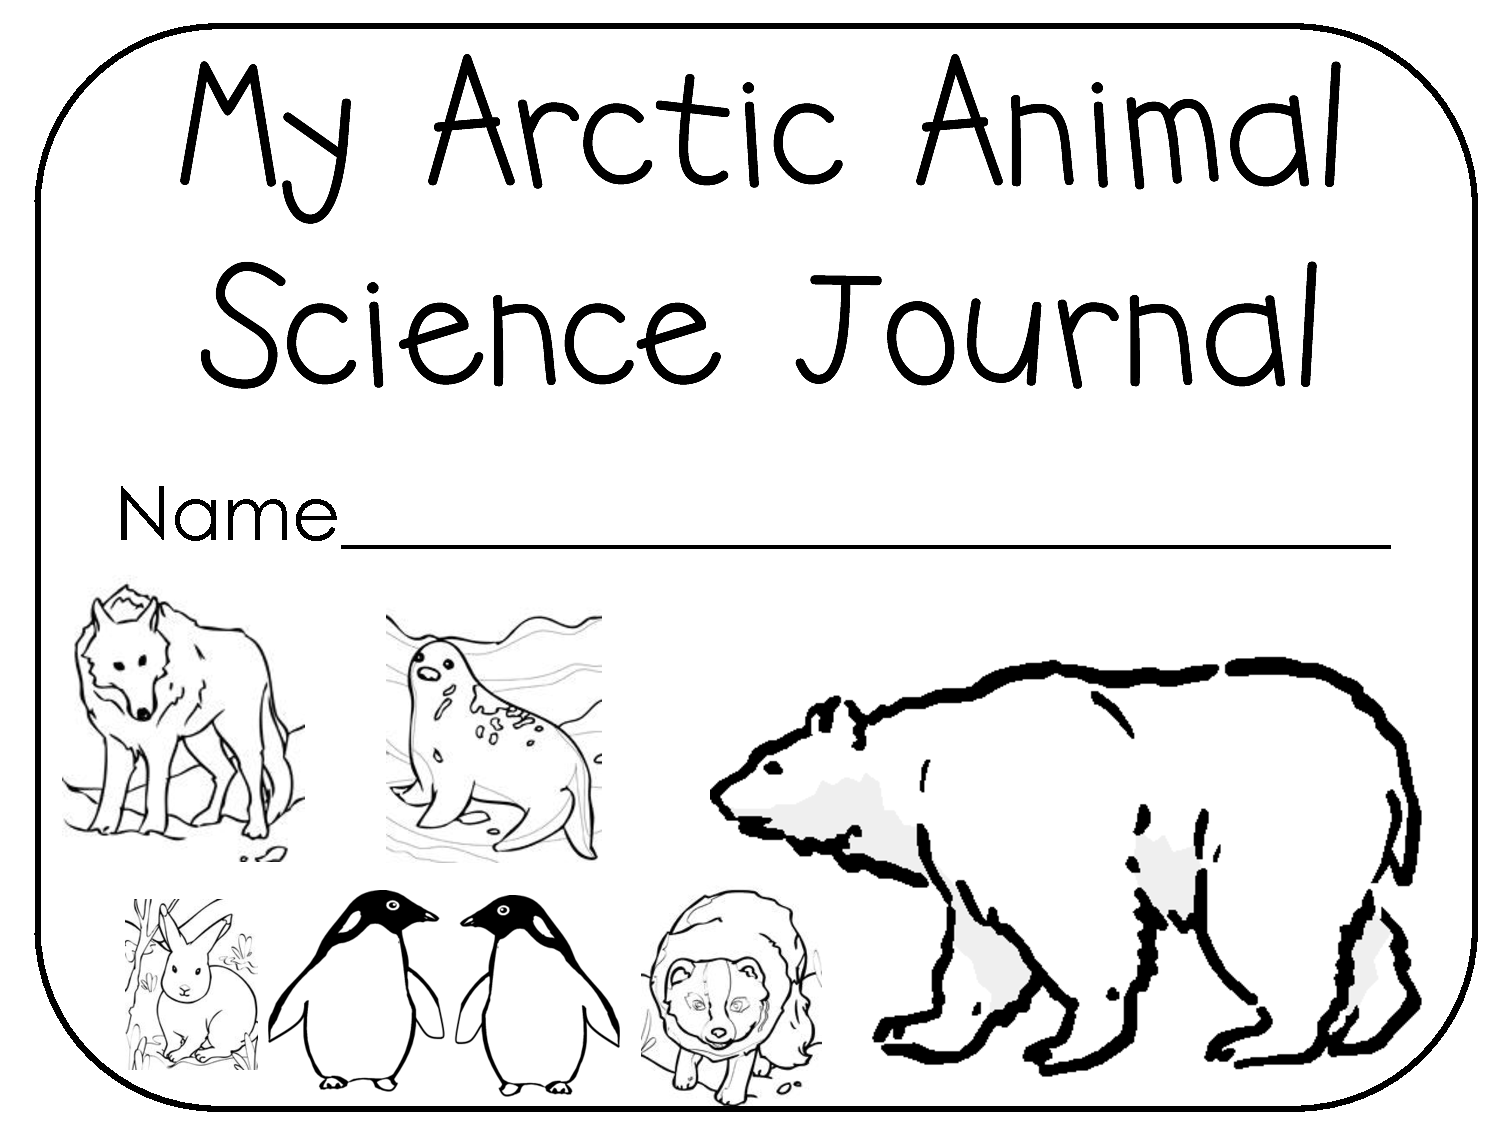 arctic animals coloring pages for preschoolers at the zoo arctic animals a walrus illustration for pages arctic for preschoolers coloring animals